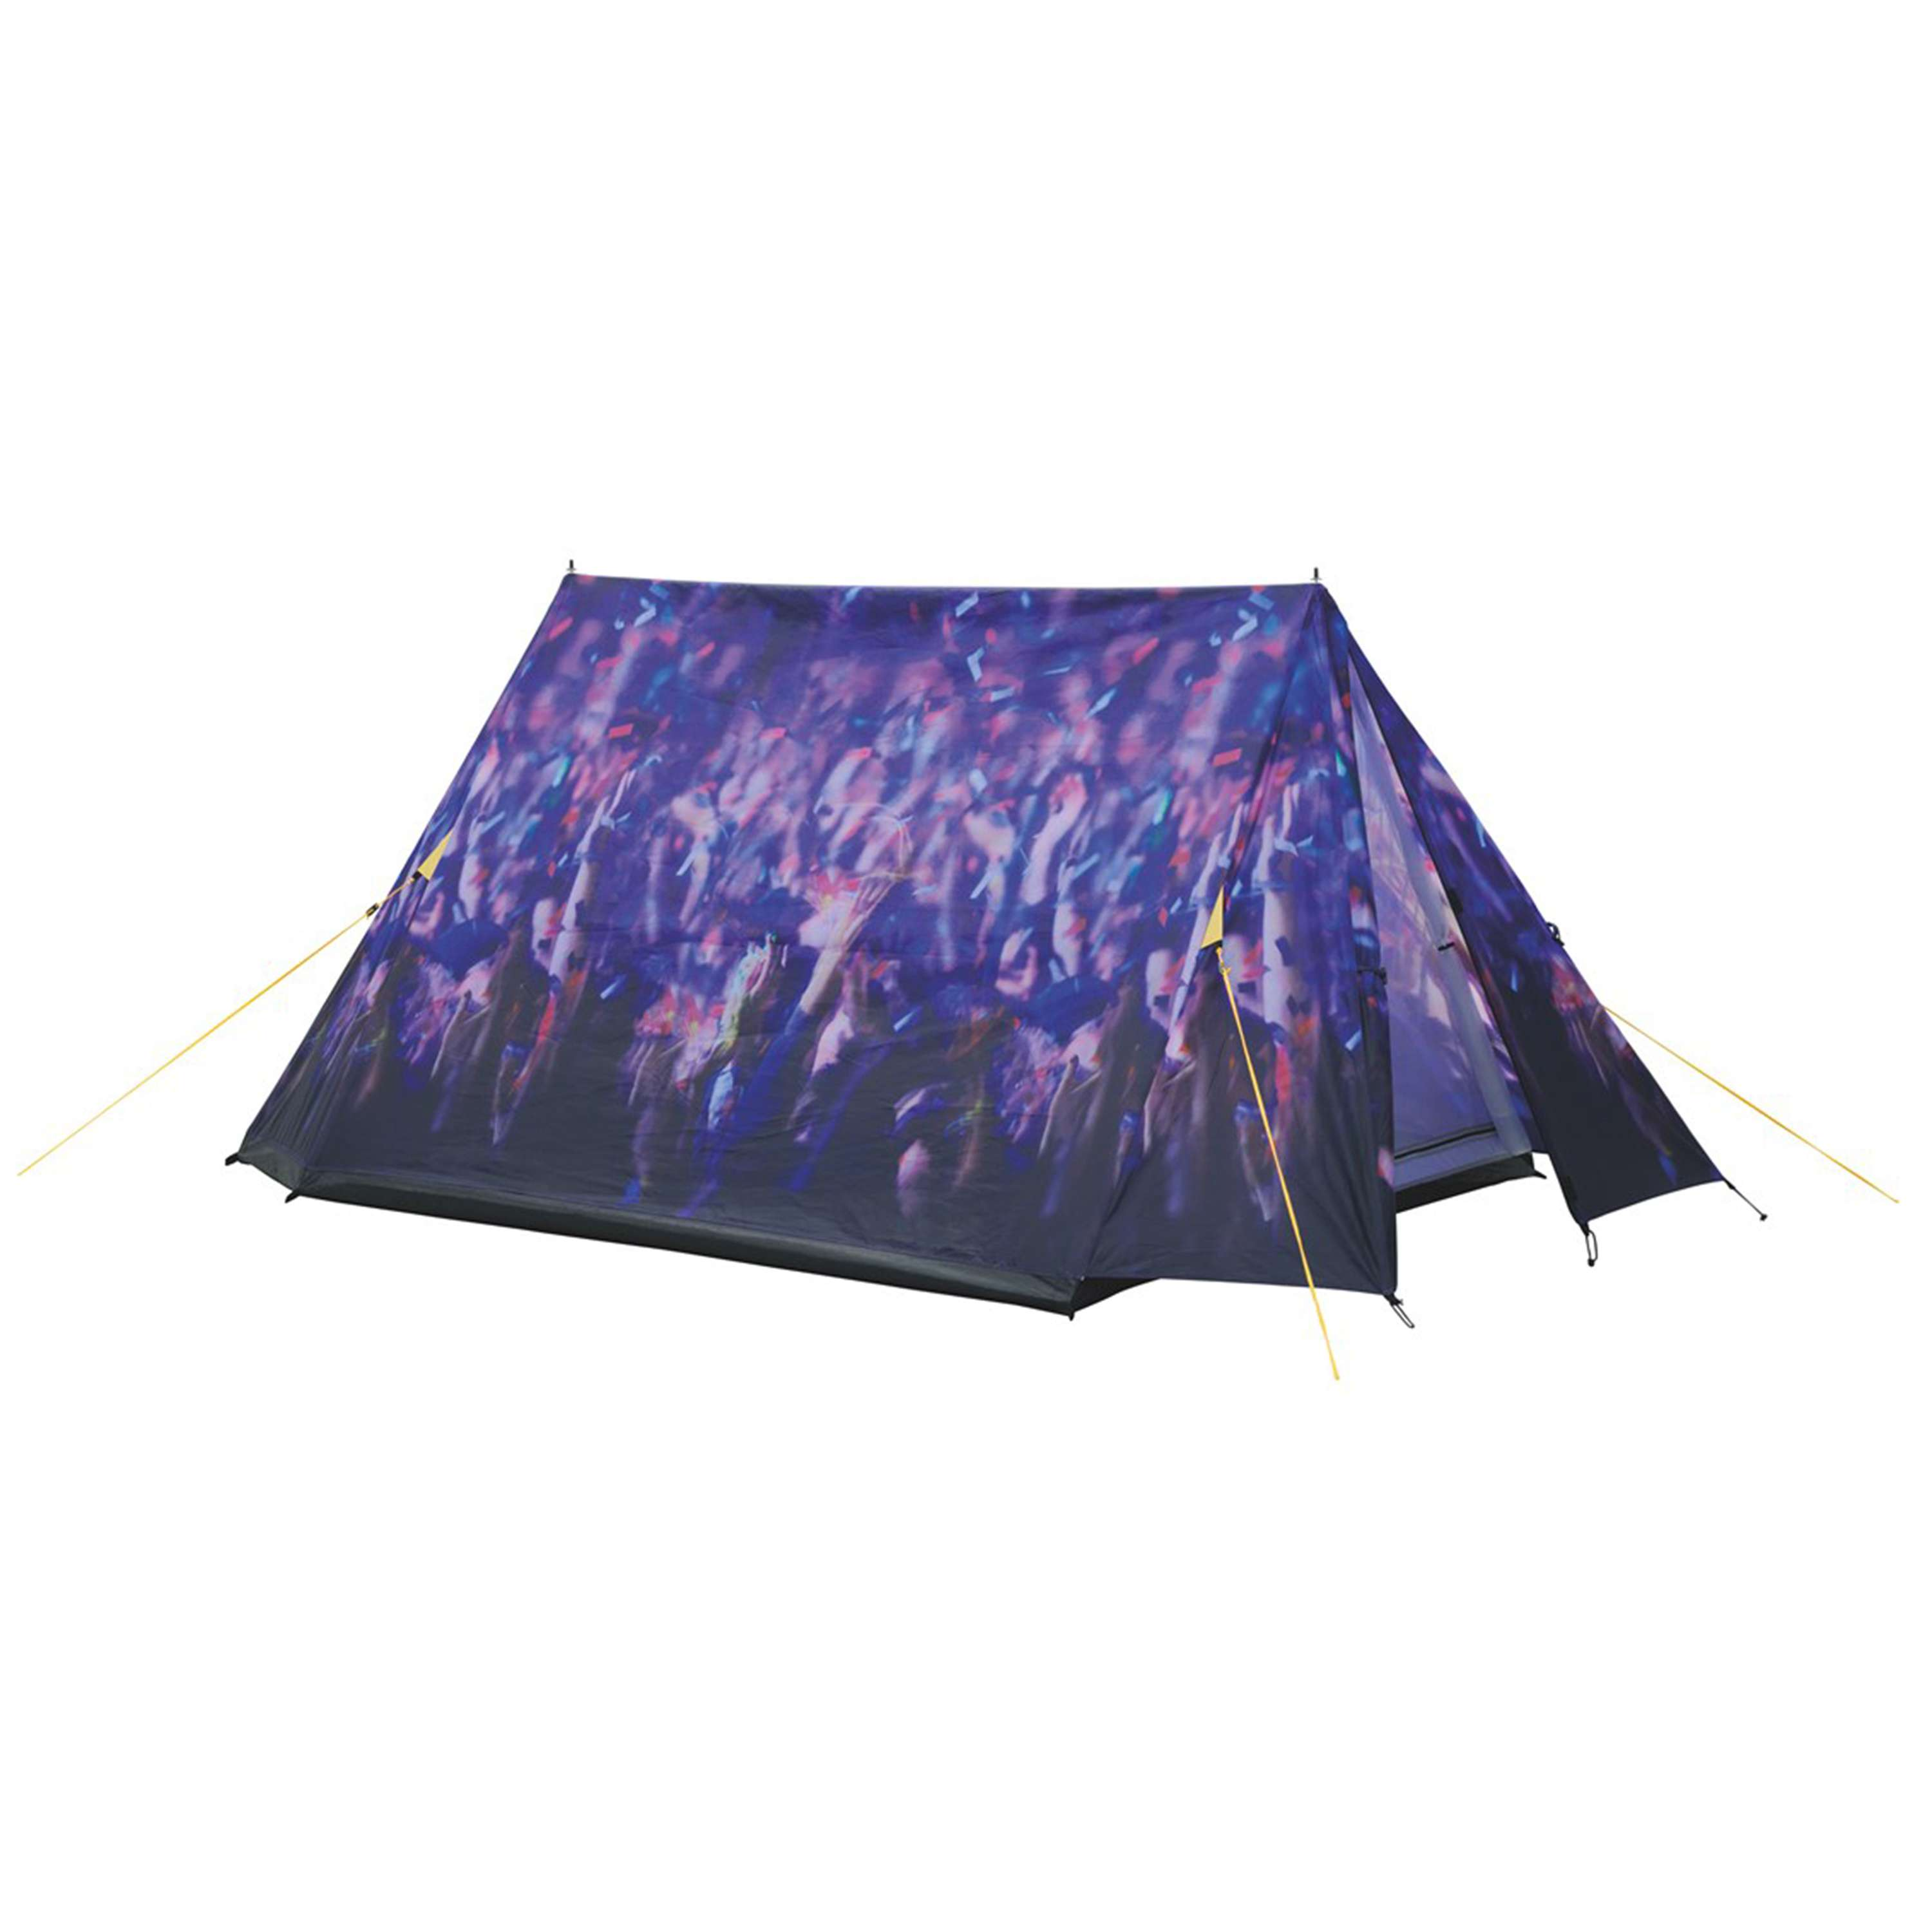 EASY CAMP People Image 2 Man Tent